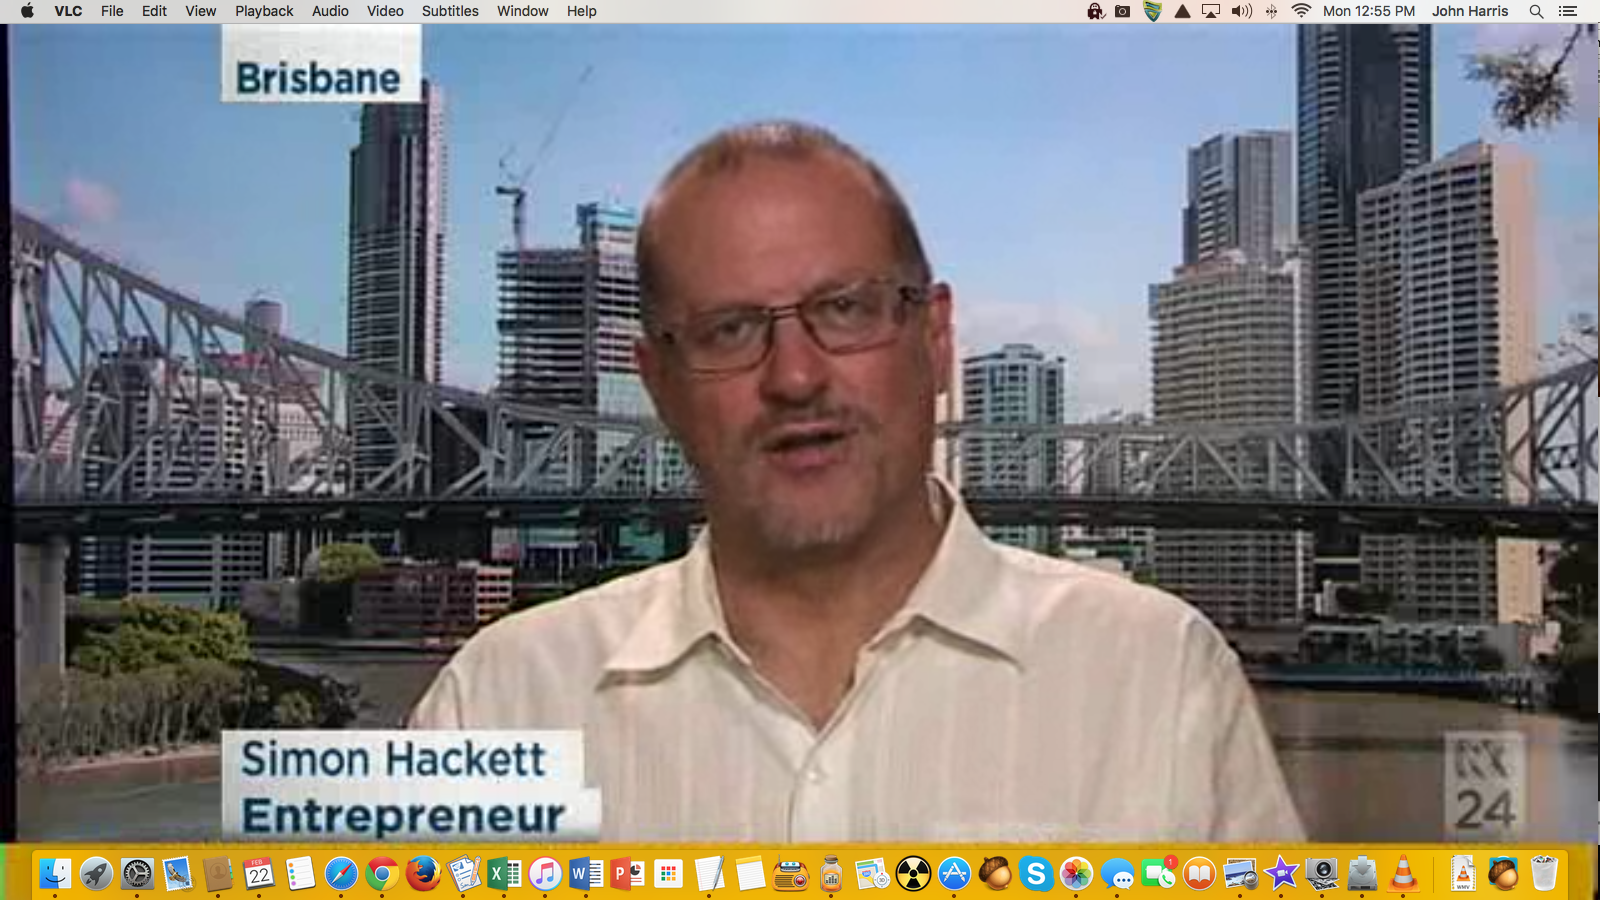 Simon Hackett on ABC News 24 | Impress Media